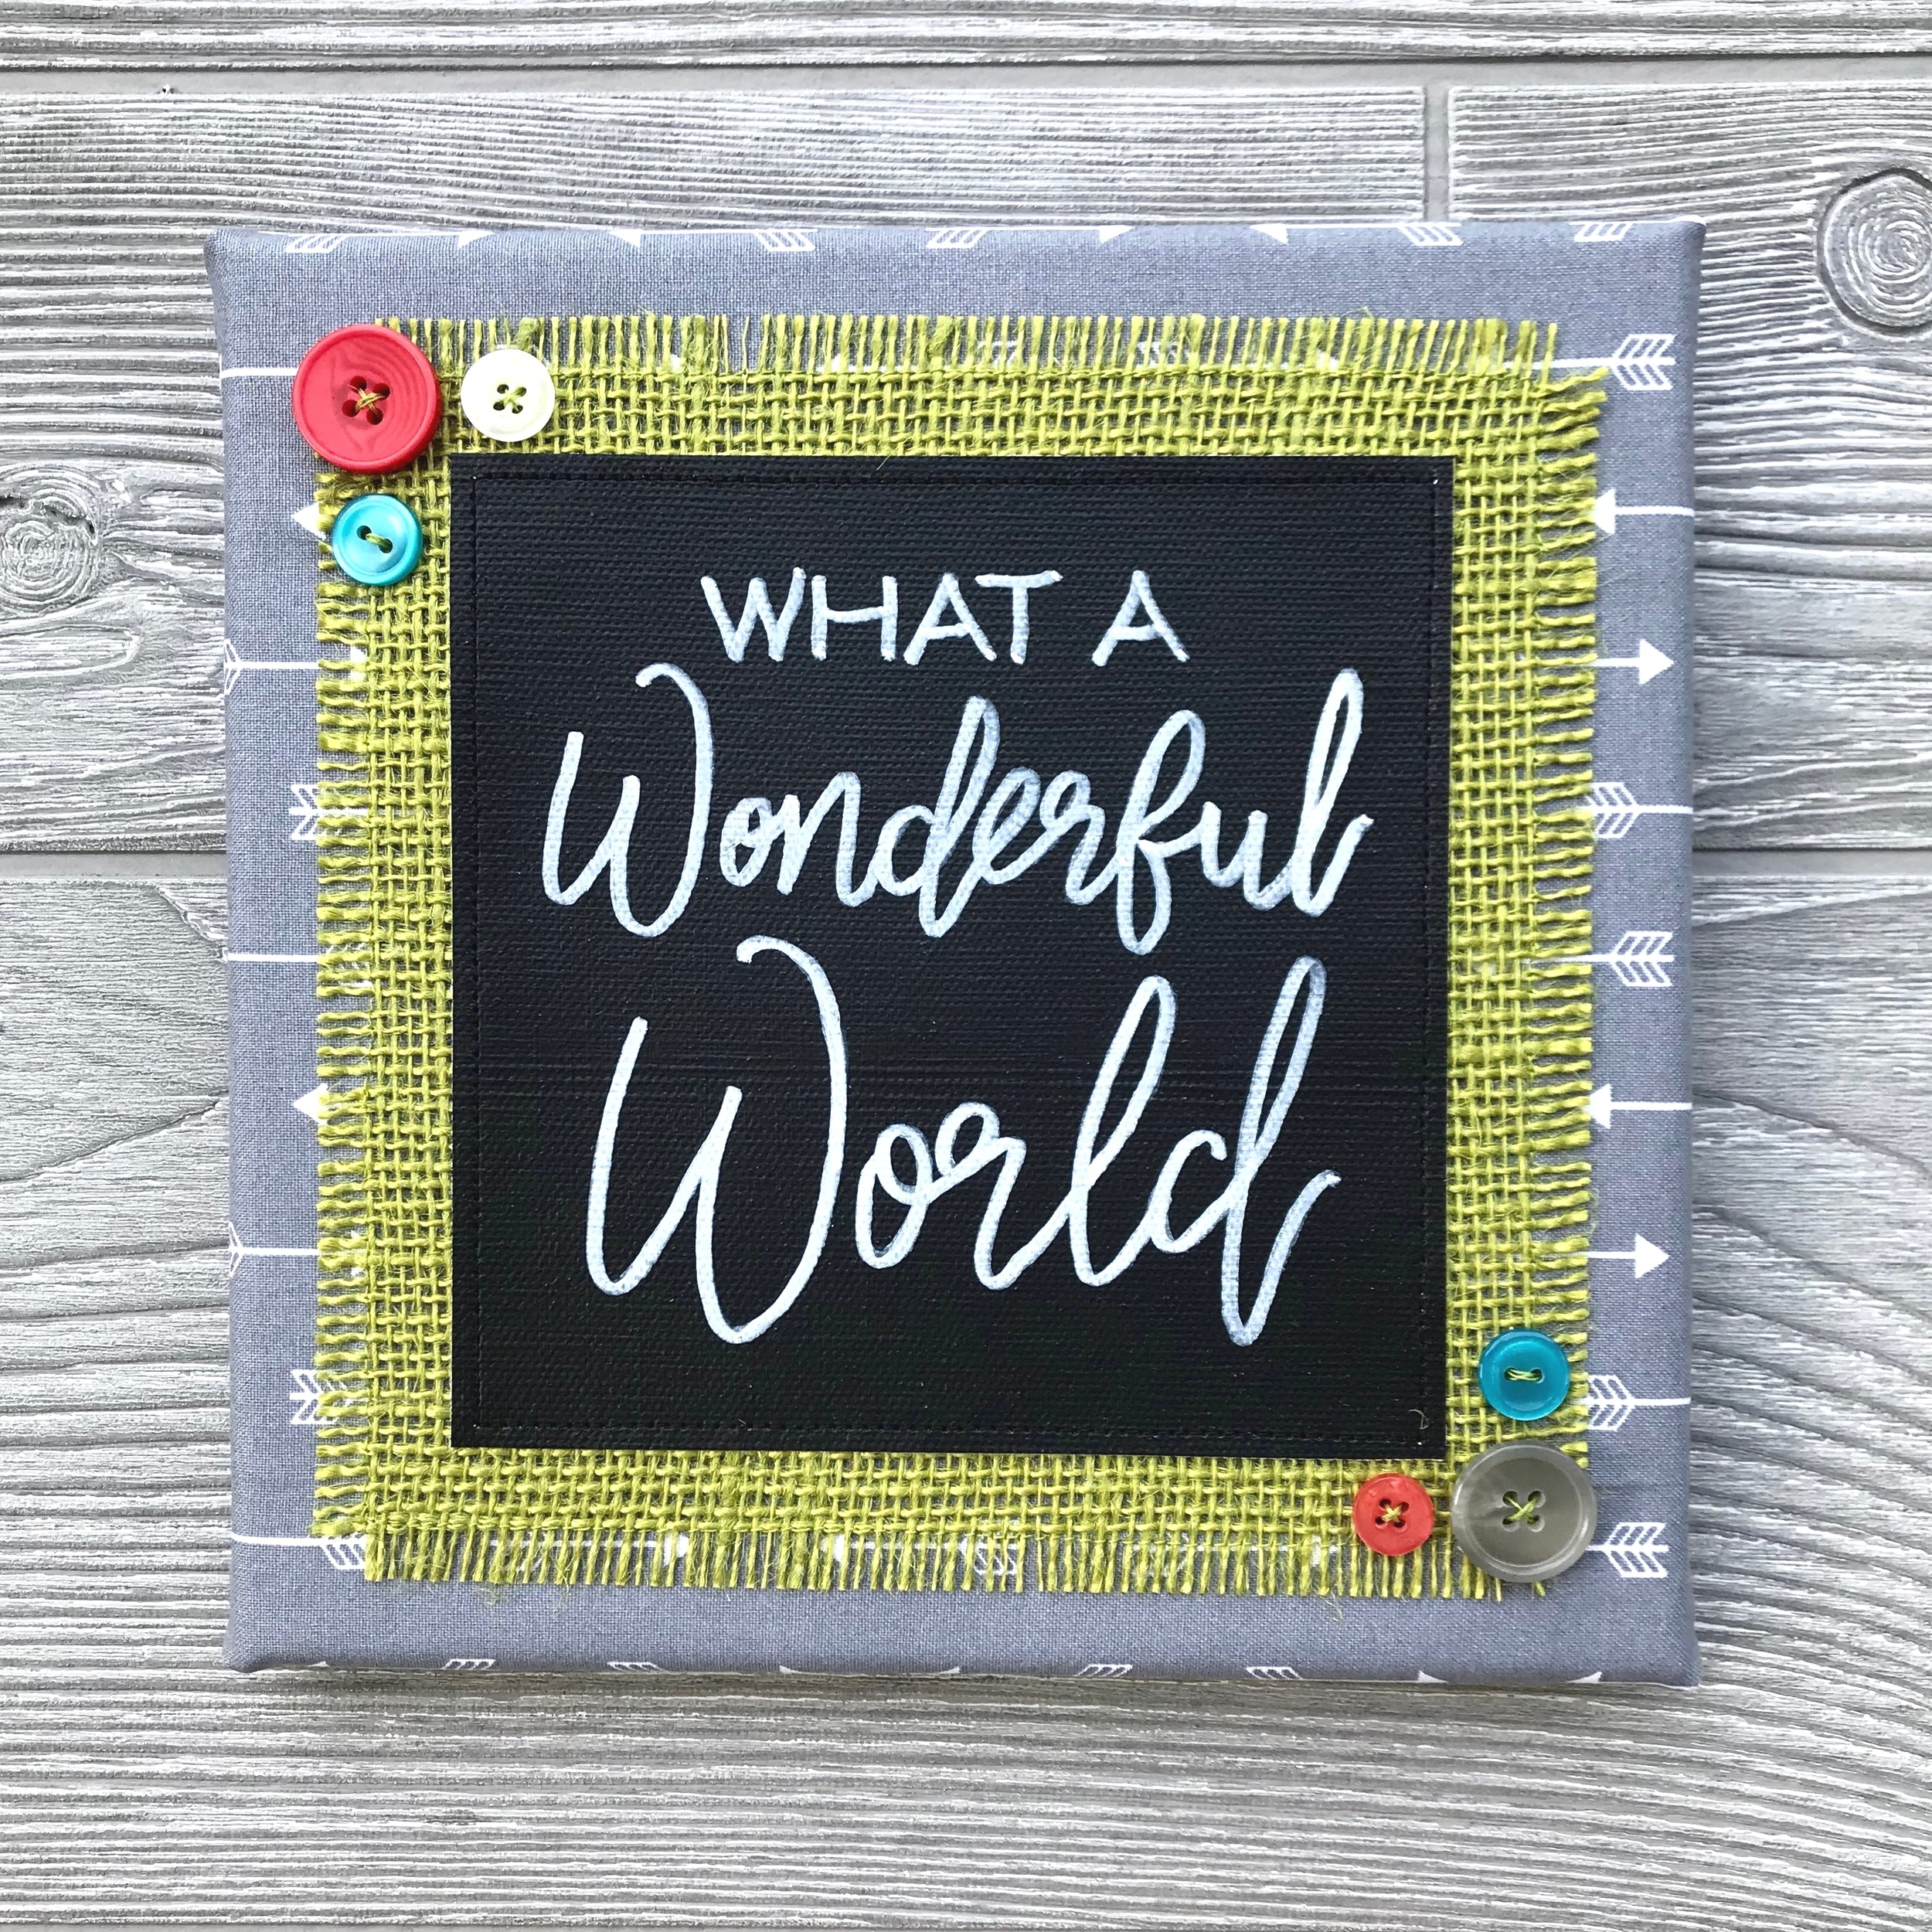 Wonderful World_gray_front_8x8.jpeg